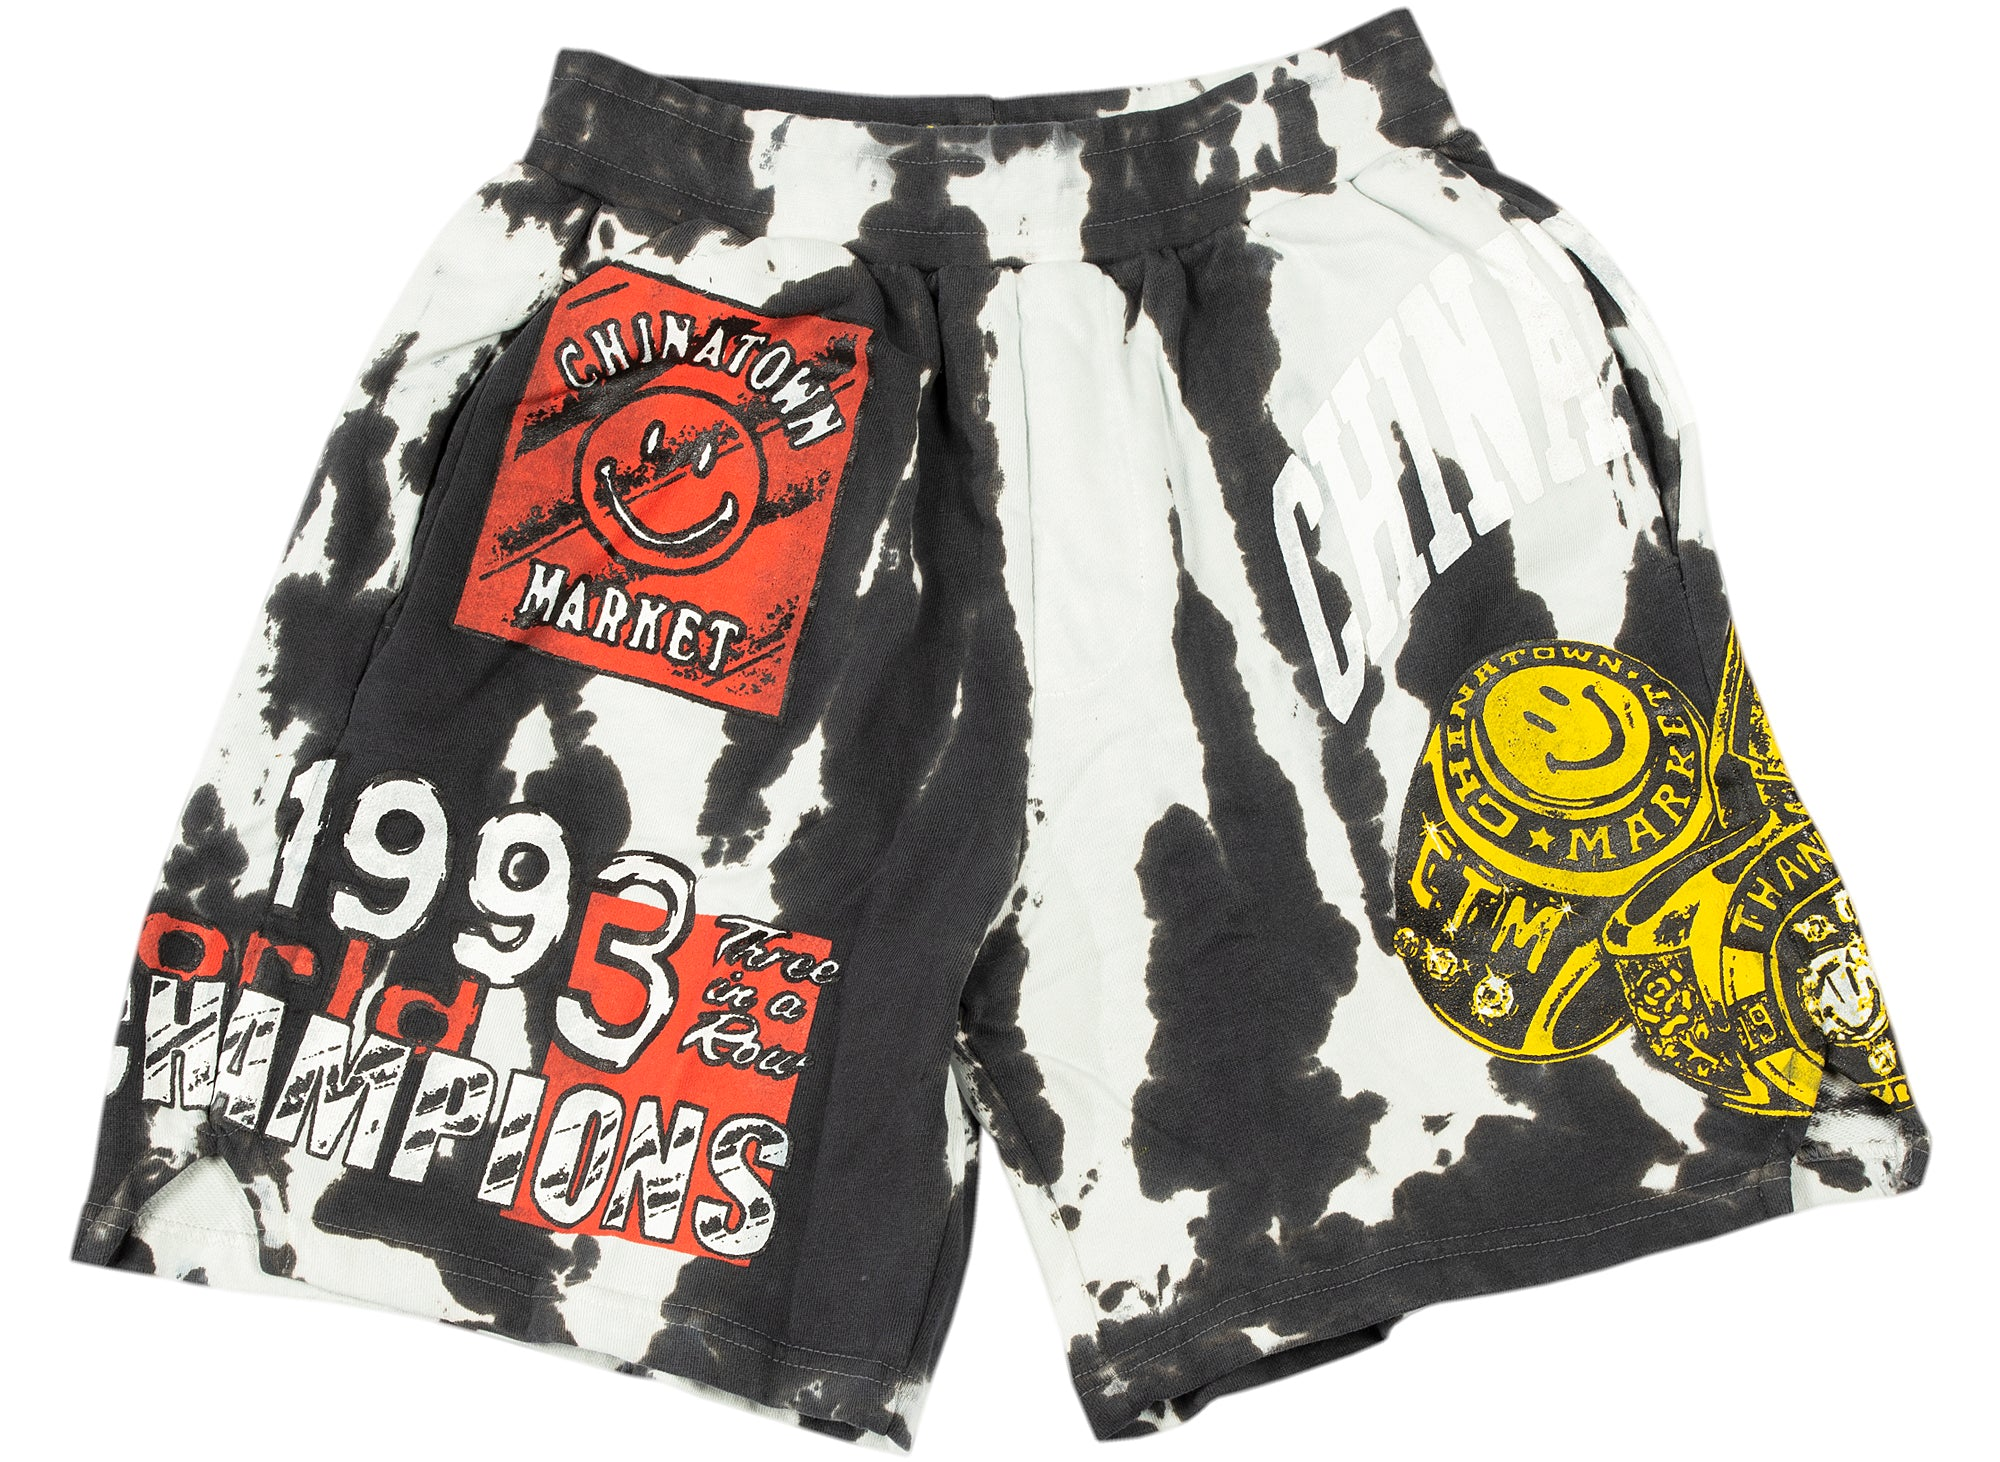 Chinatown Market Smiley Champion 3 Rings Tie-Dye Shorts xld